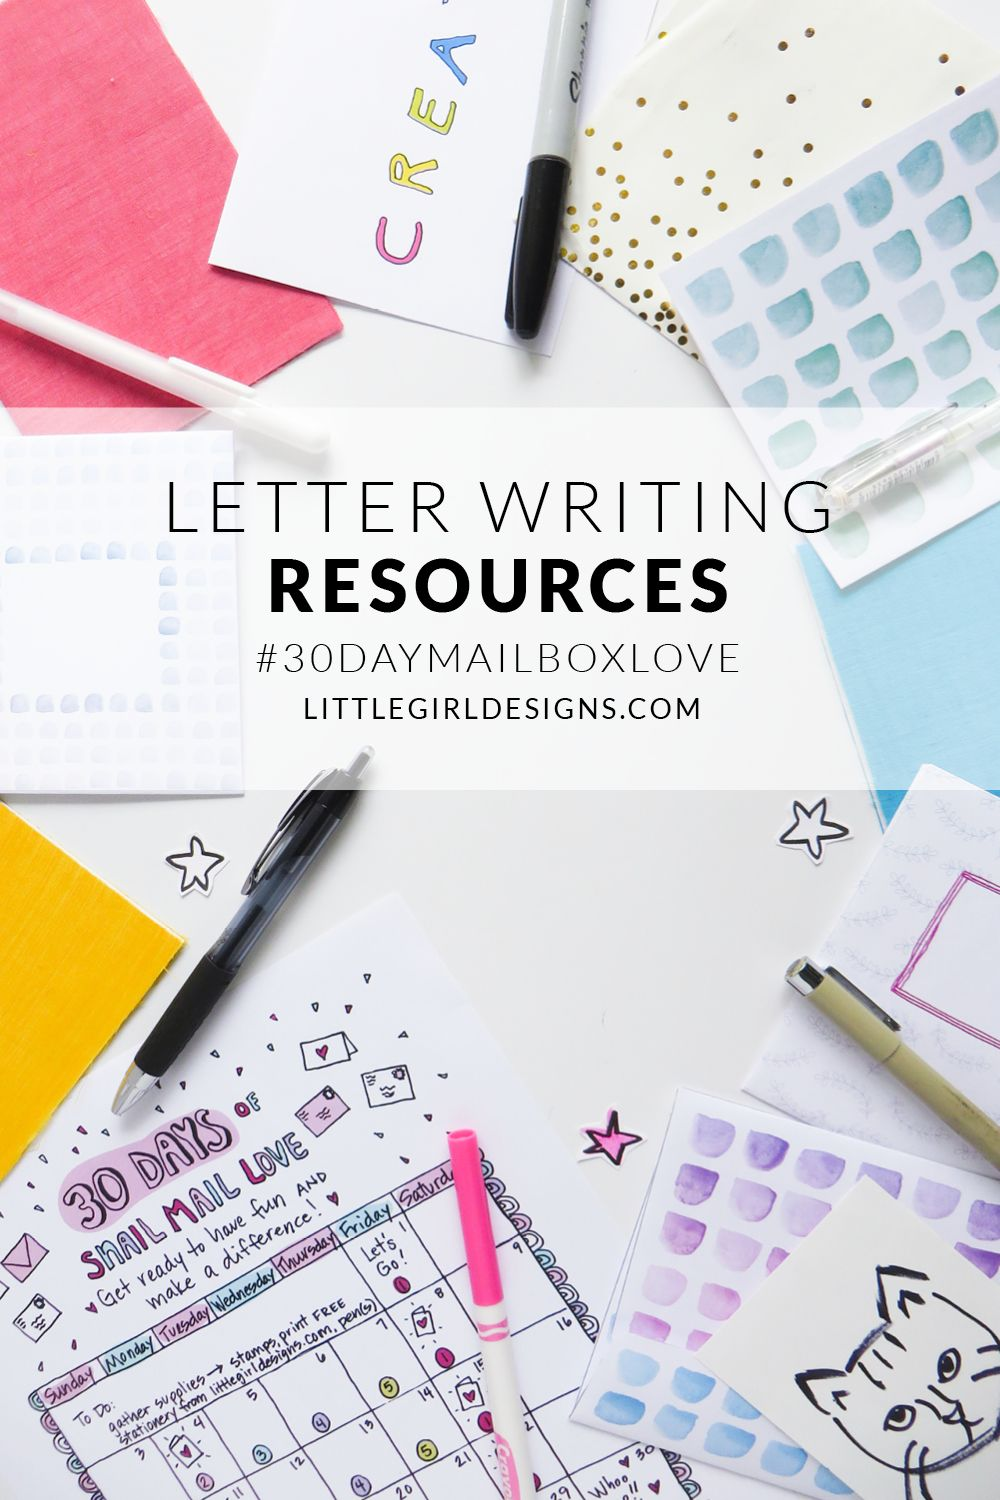 Letter Writing Resources For Writing Letters All Year Long Jennie Moraitis Letter Writing Lettering Pen Pal Letters